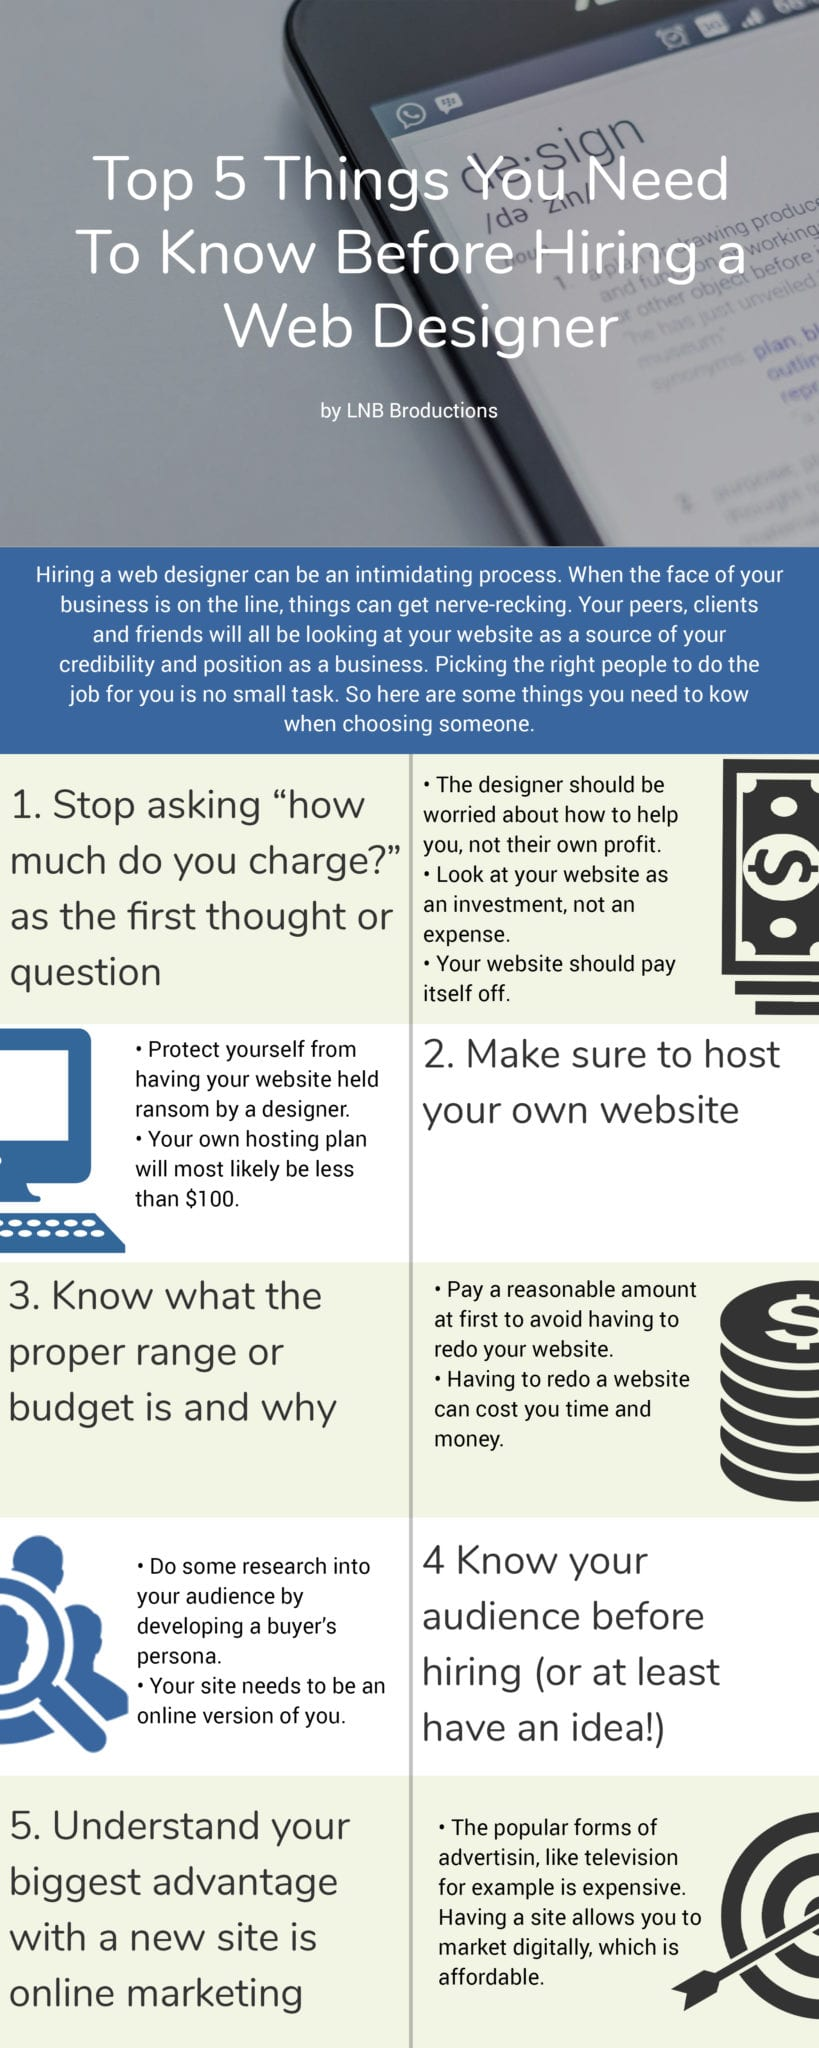 top-5-things-you-need-to-know-before-hiring-a-web-designer-infographic